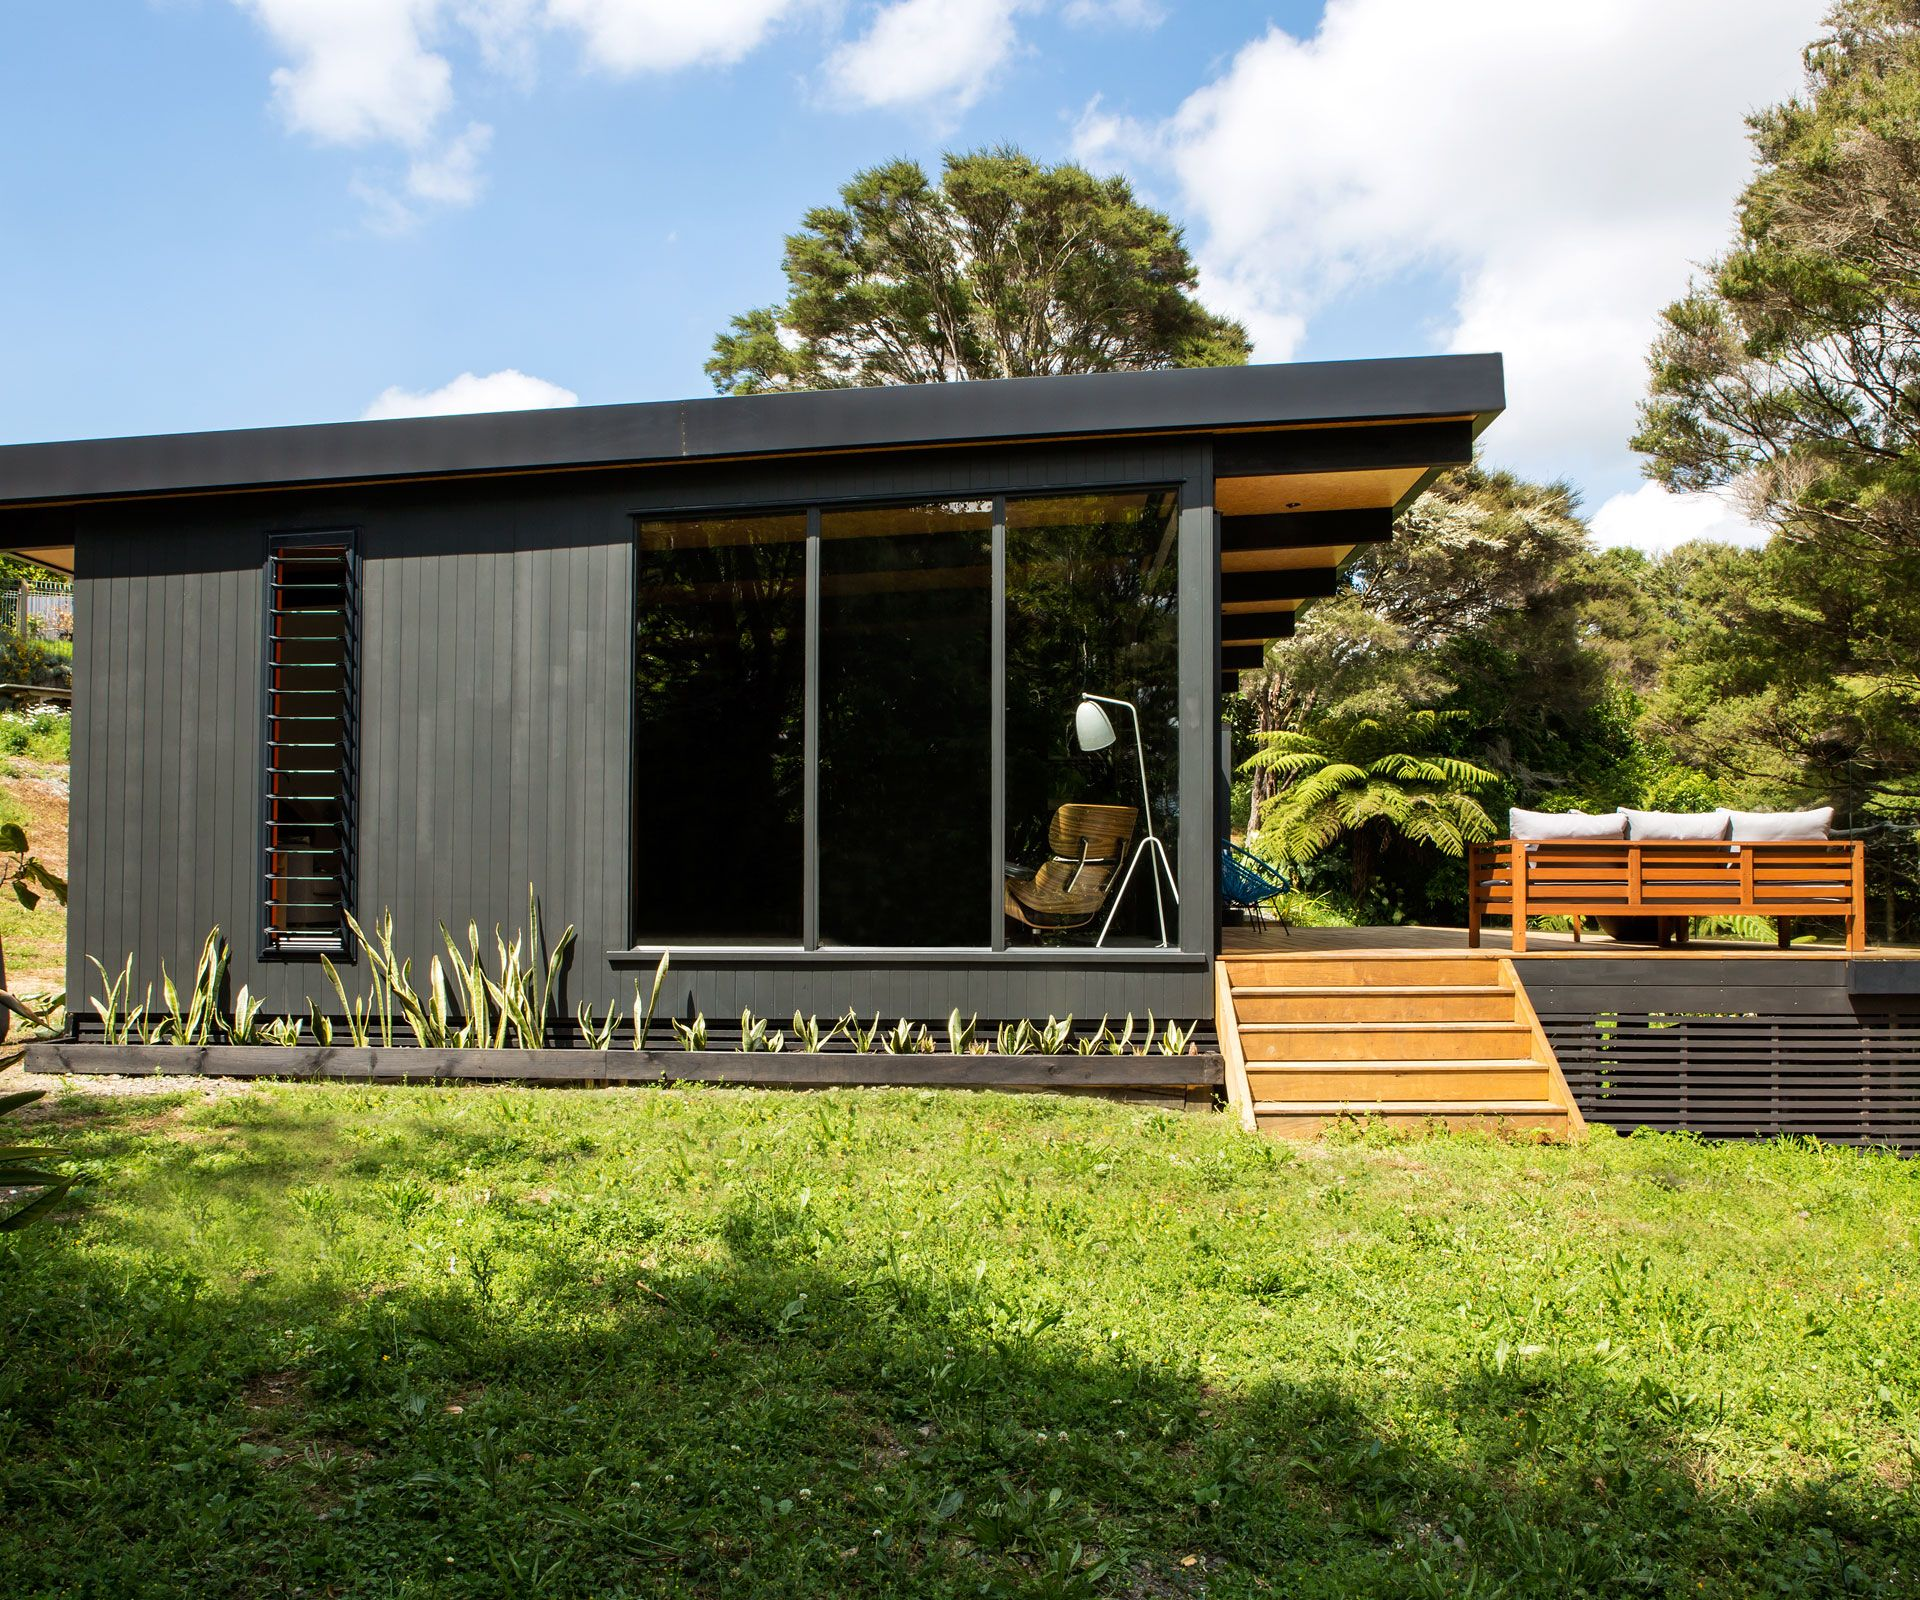 This small home is an inspiring answer to suburban living